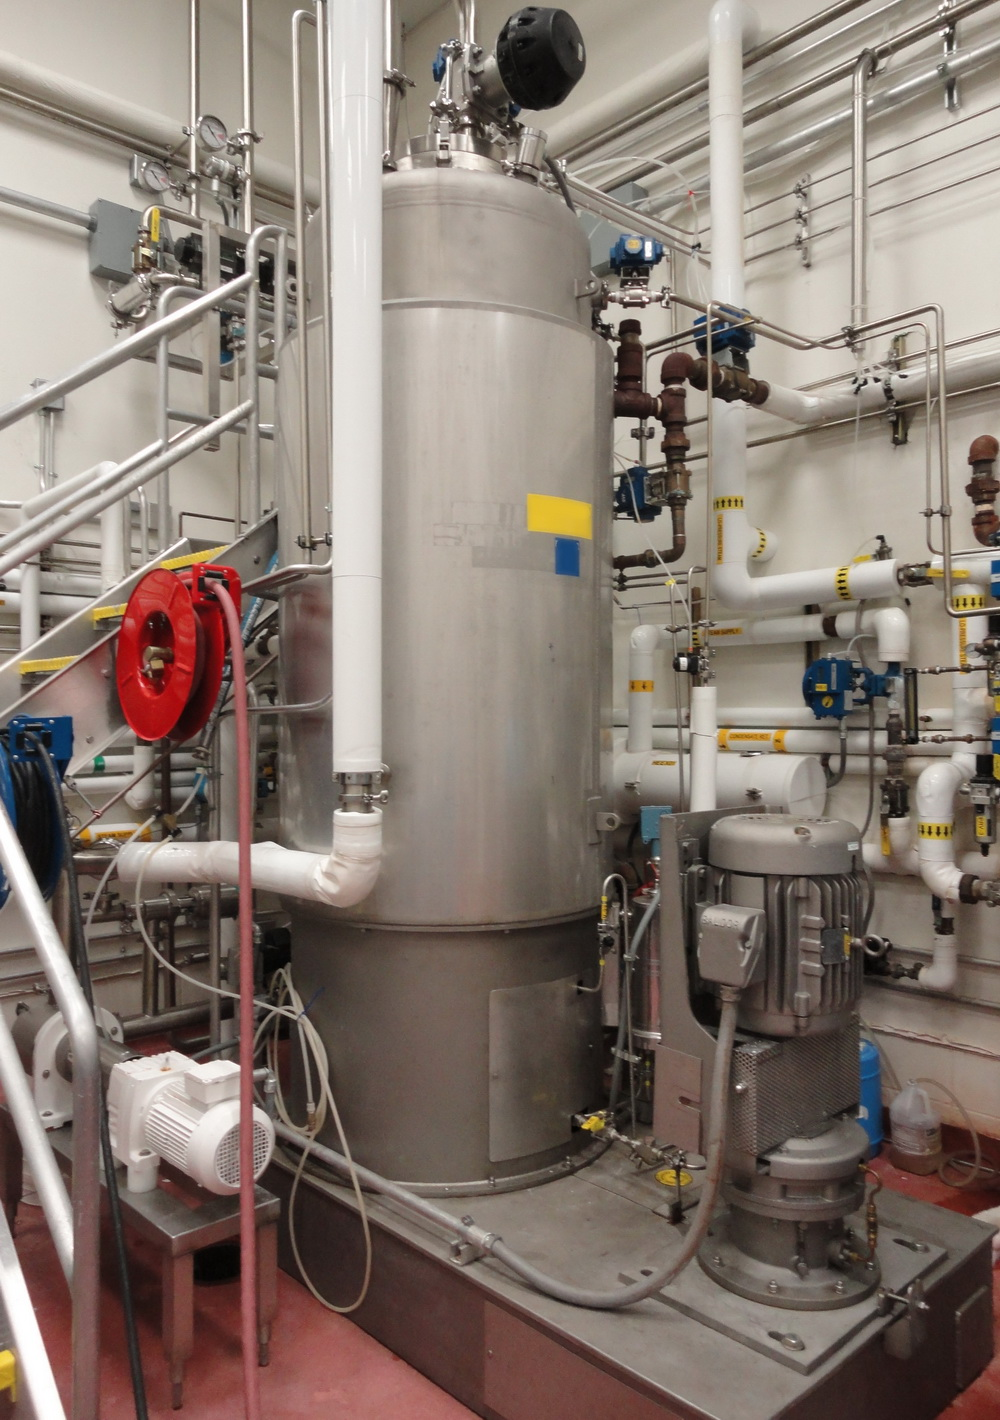 Vertical 1500 Liter/400 gallon SS Jacketed Vacuum Process Tank - Image 2 of 13